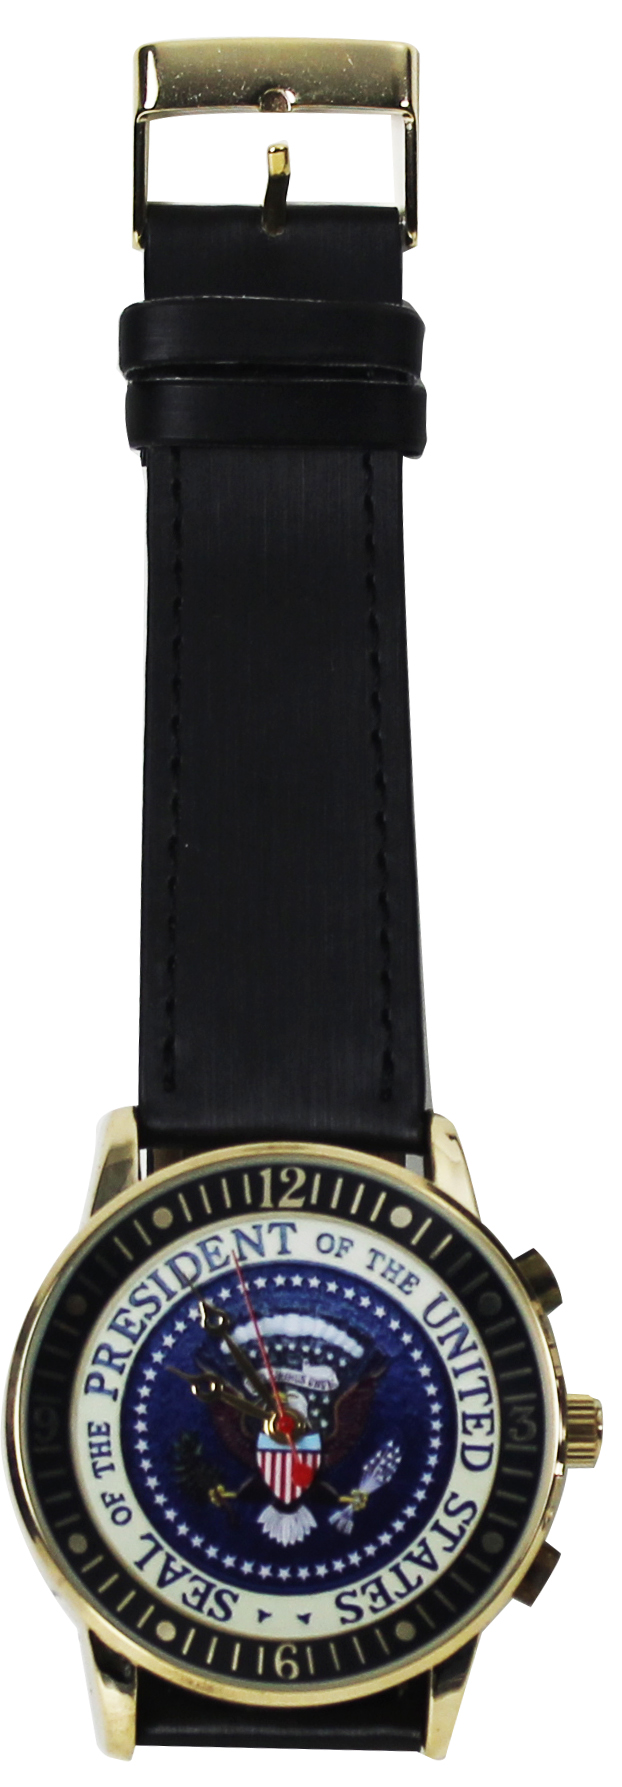 Presidential Seal Watch with Strap